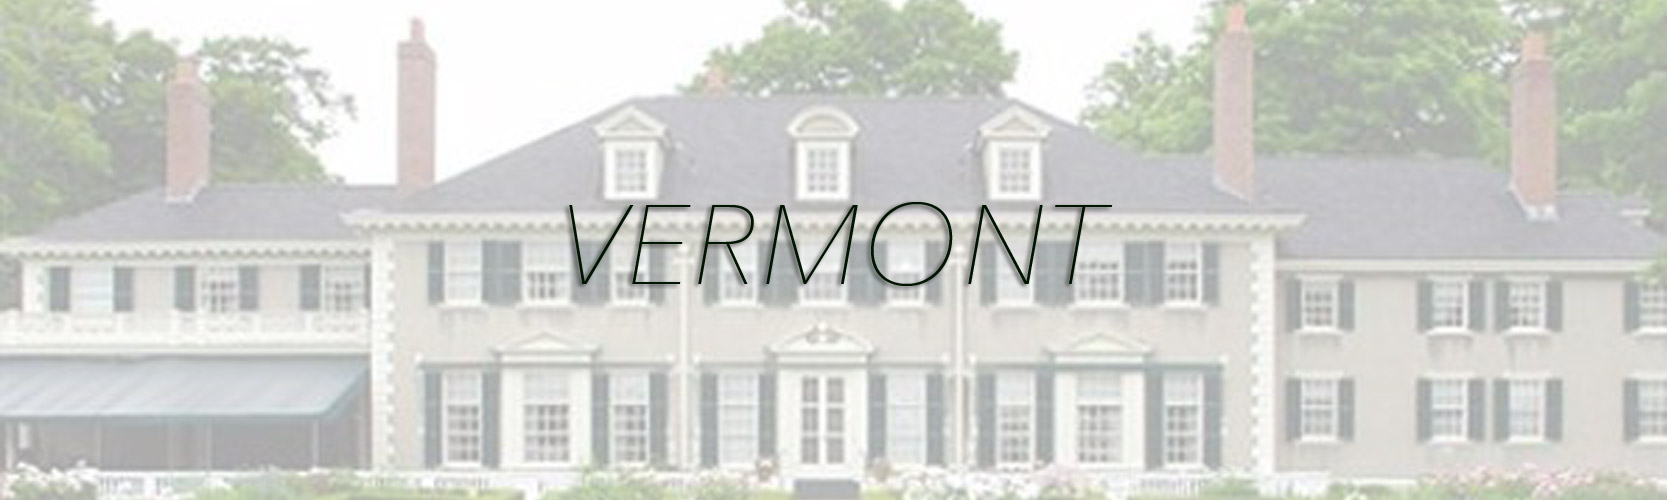 Shipping Futons, Sofa Beds, and Other Futon Shop products to Vermont